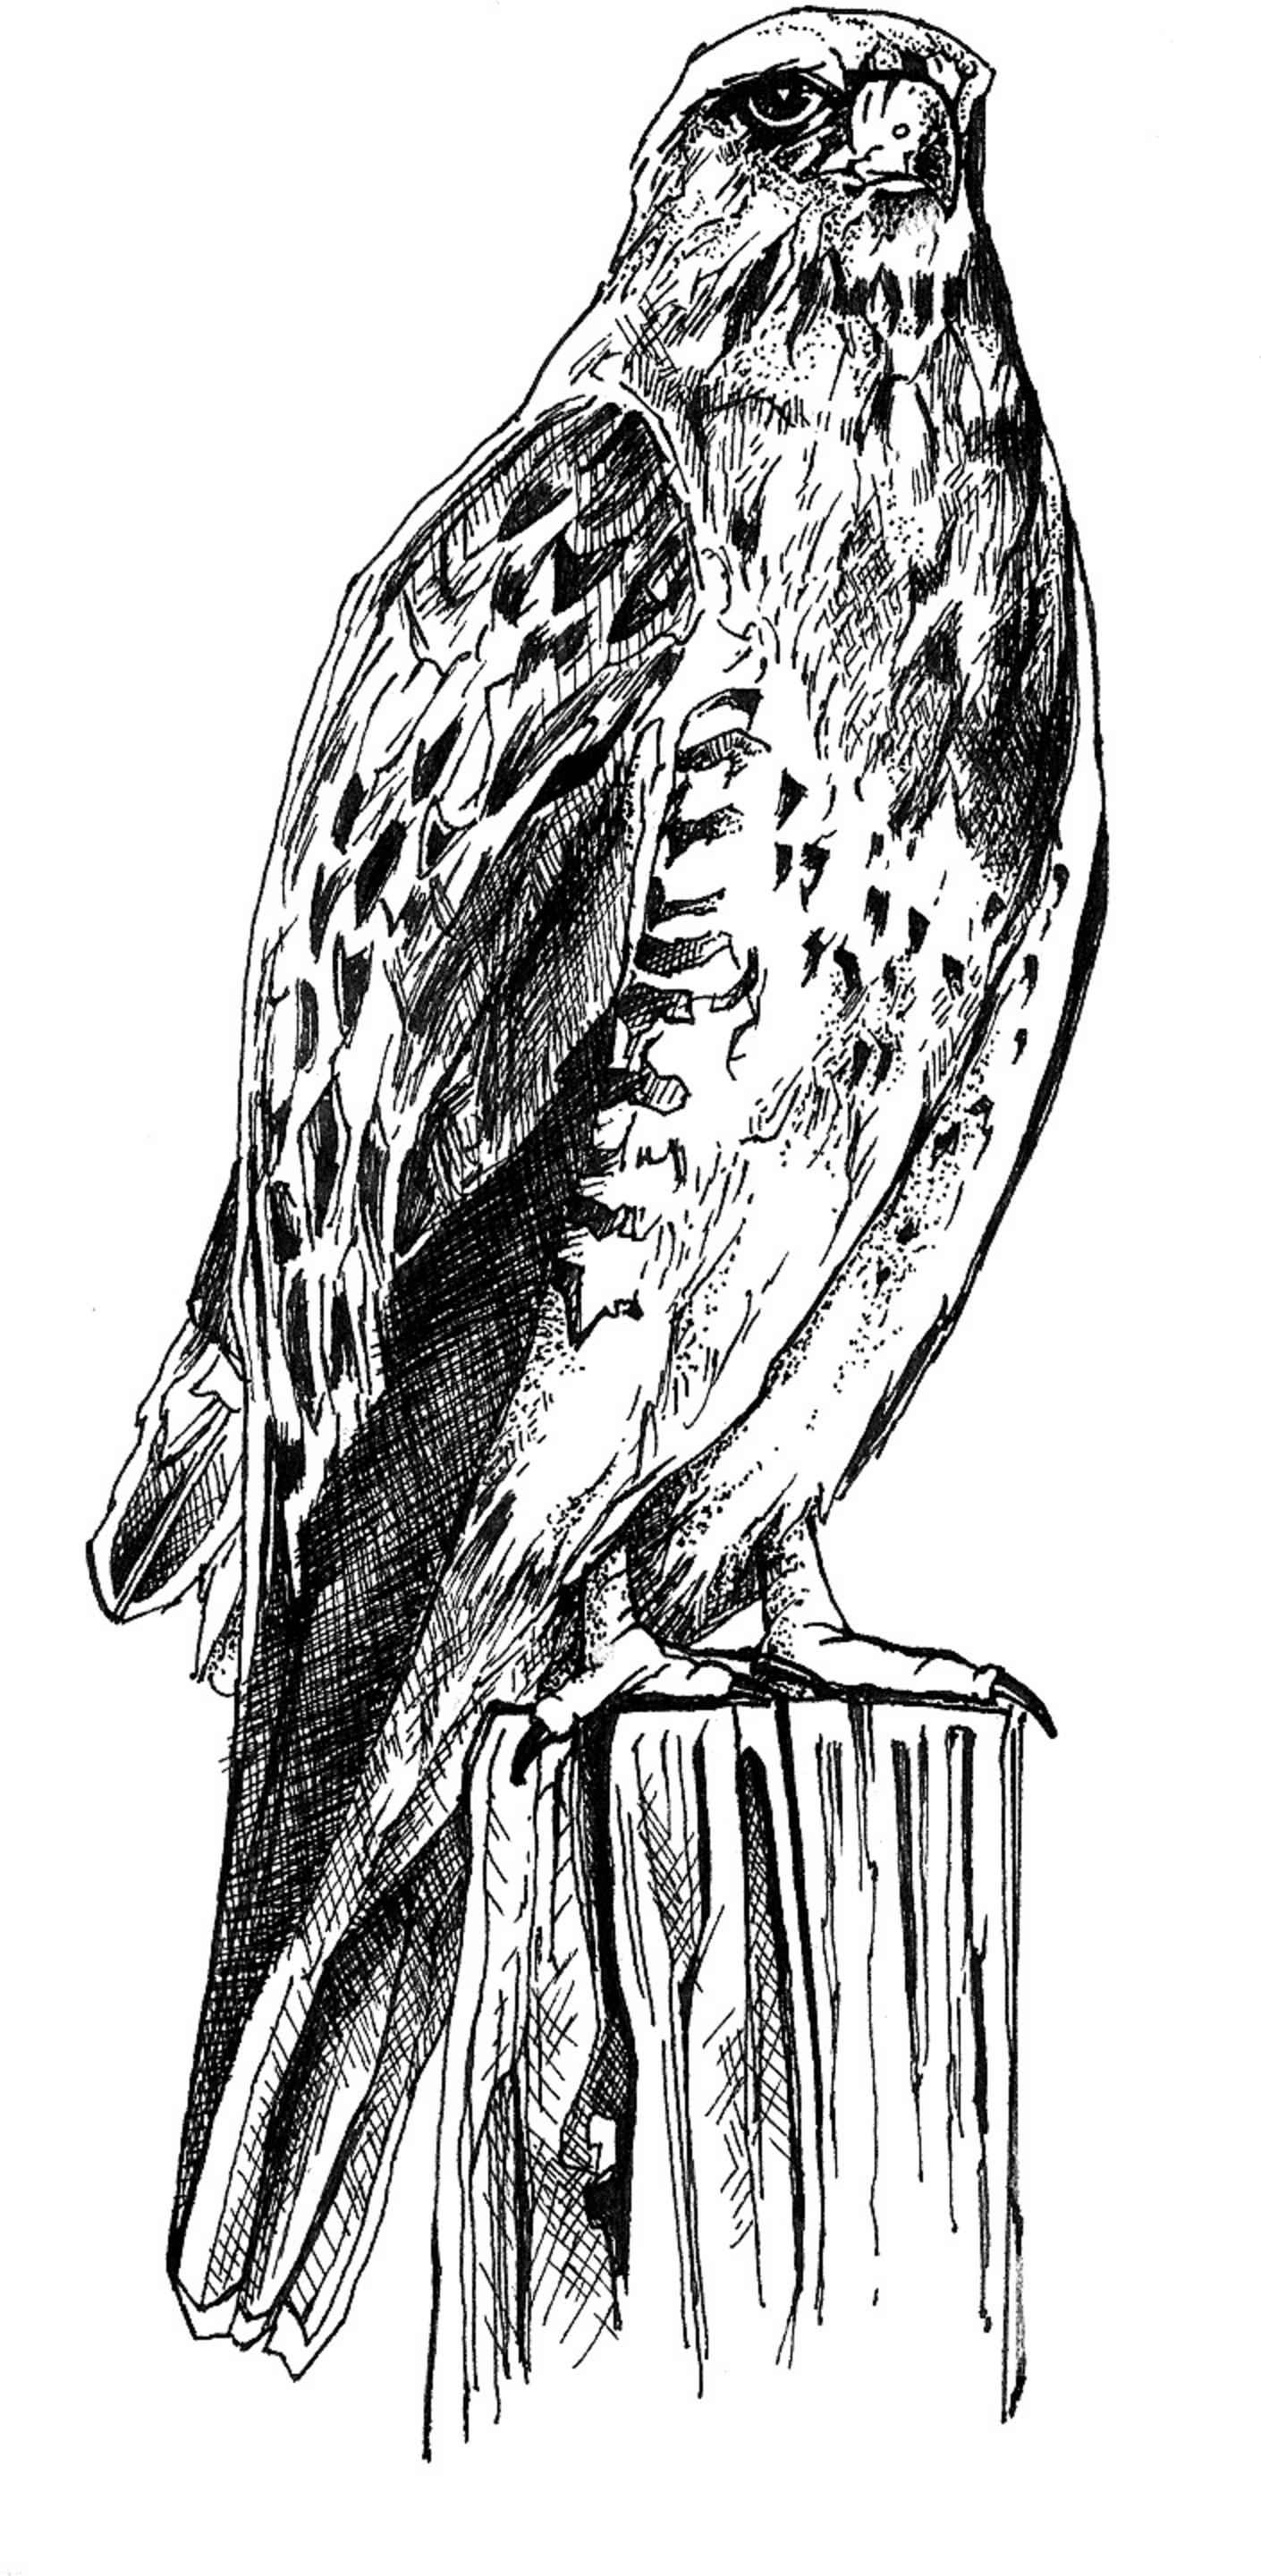 Line art illustration free images public domain images black and white line art drawing bird body altavistaventures Image collections